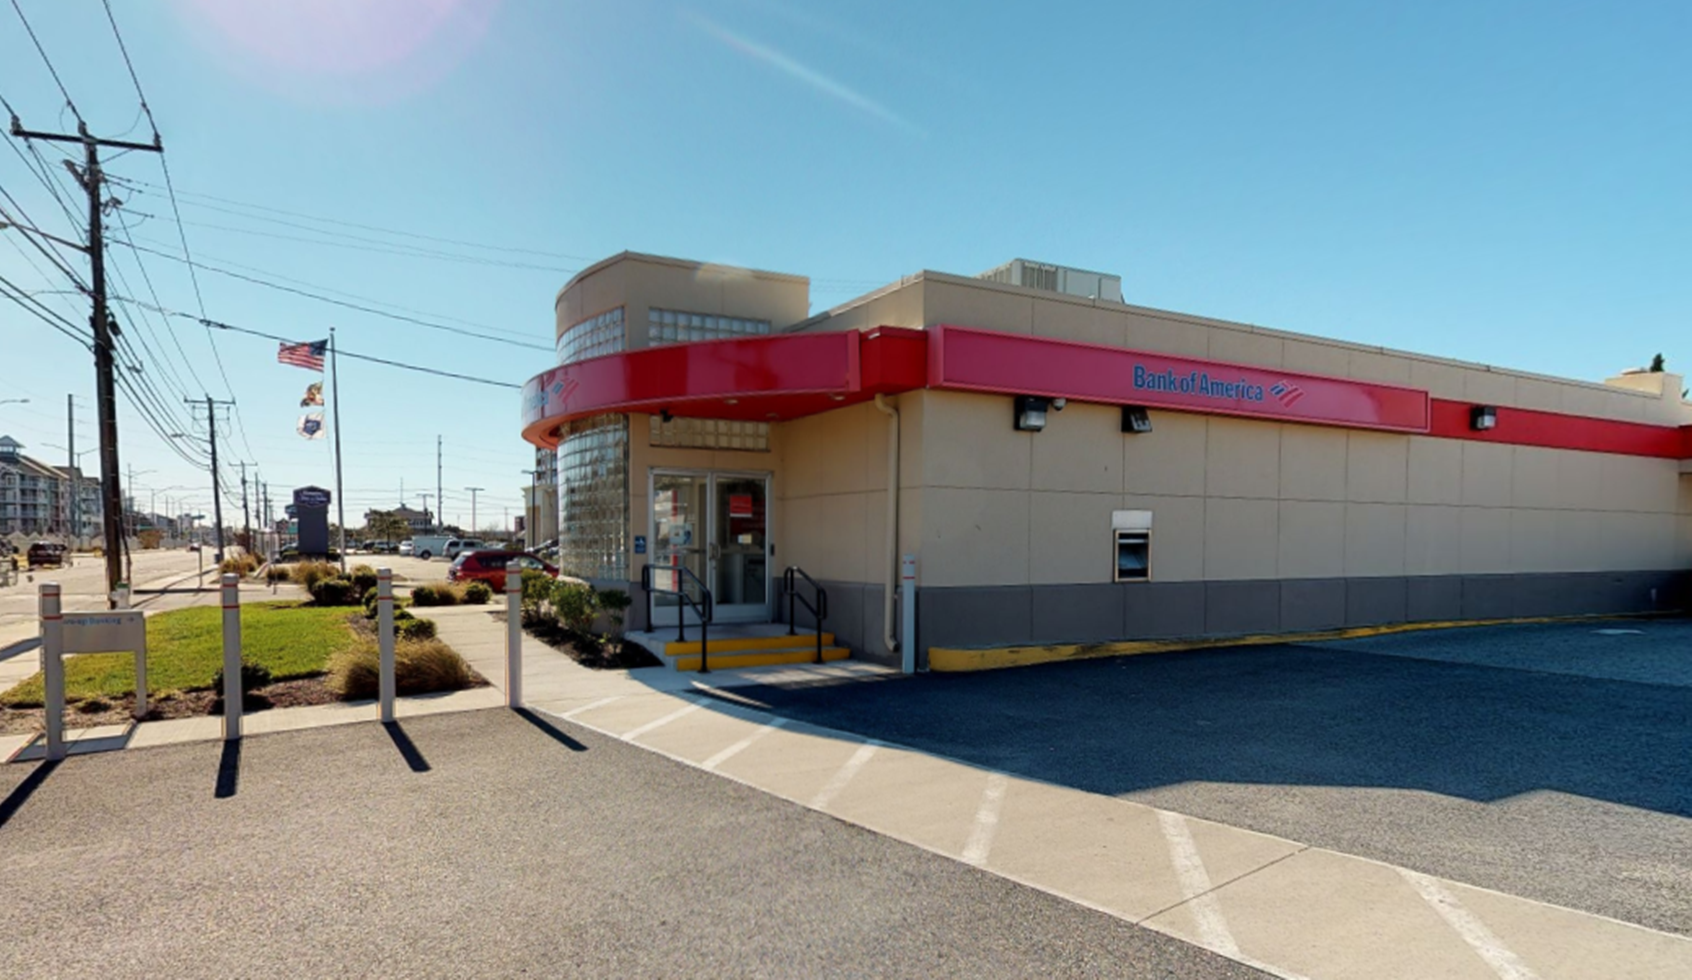 Bank of America financial center with drive-thru ATM | 4401 Coastal Hwy, Ocean City, MD 21842